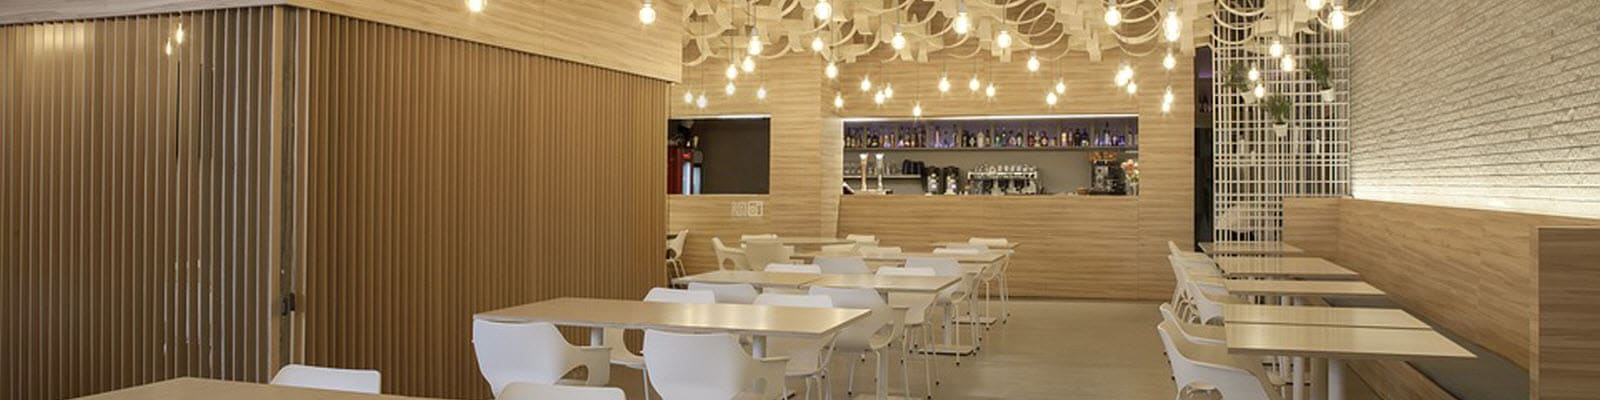 Restaurant Design and Concept